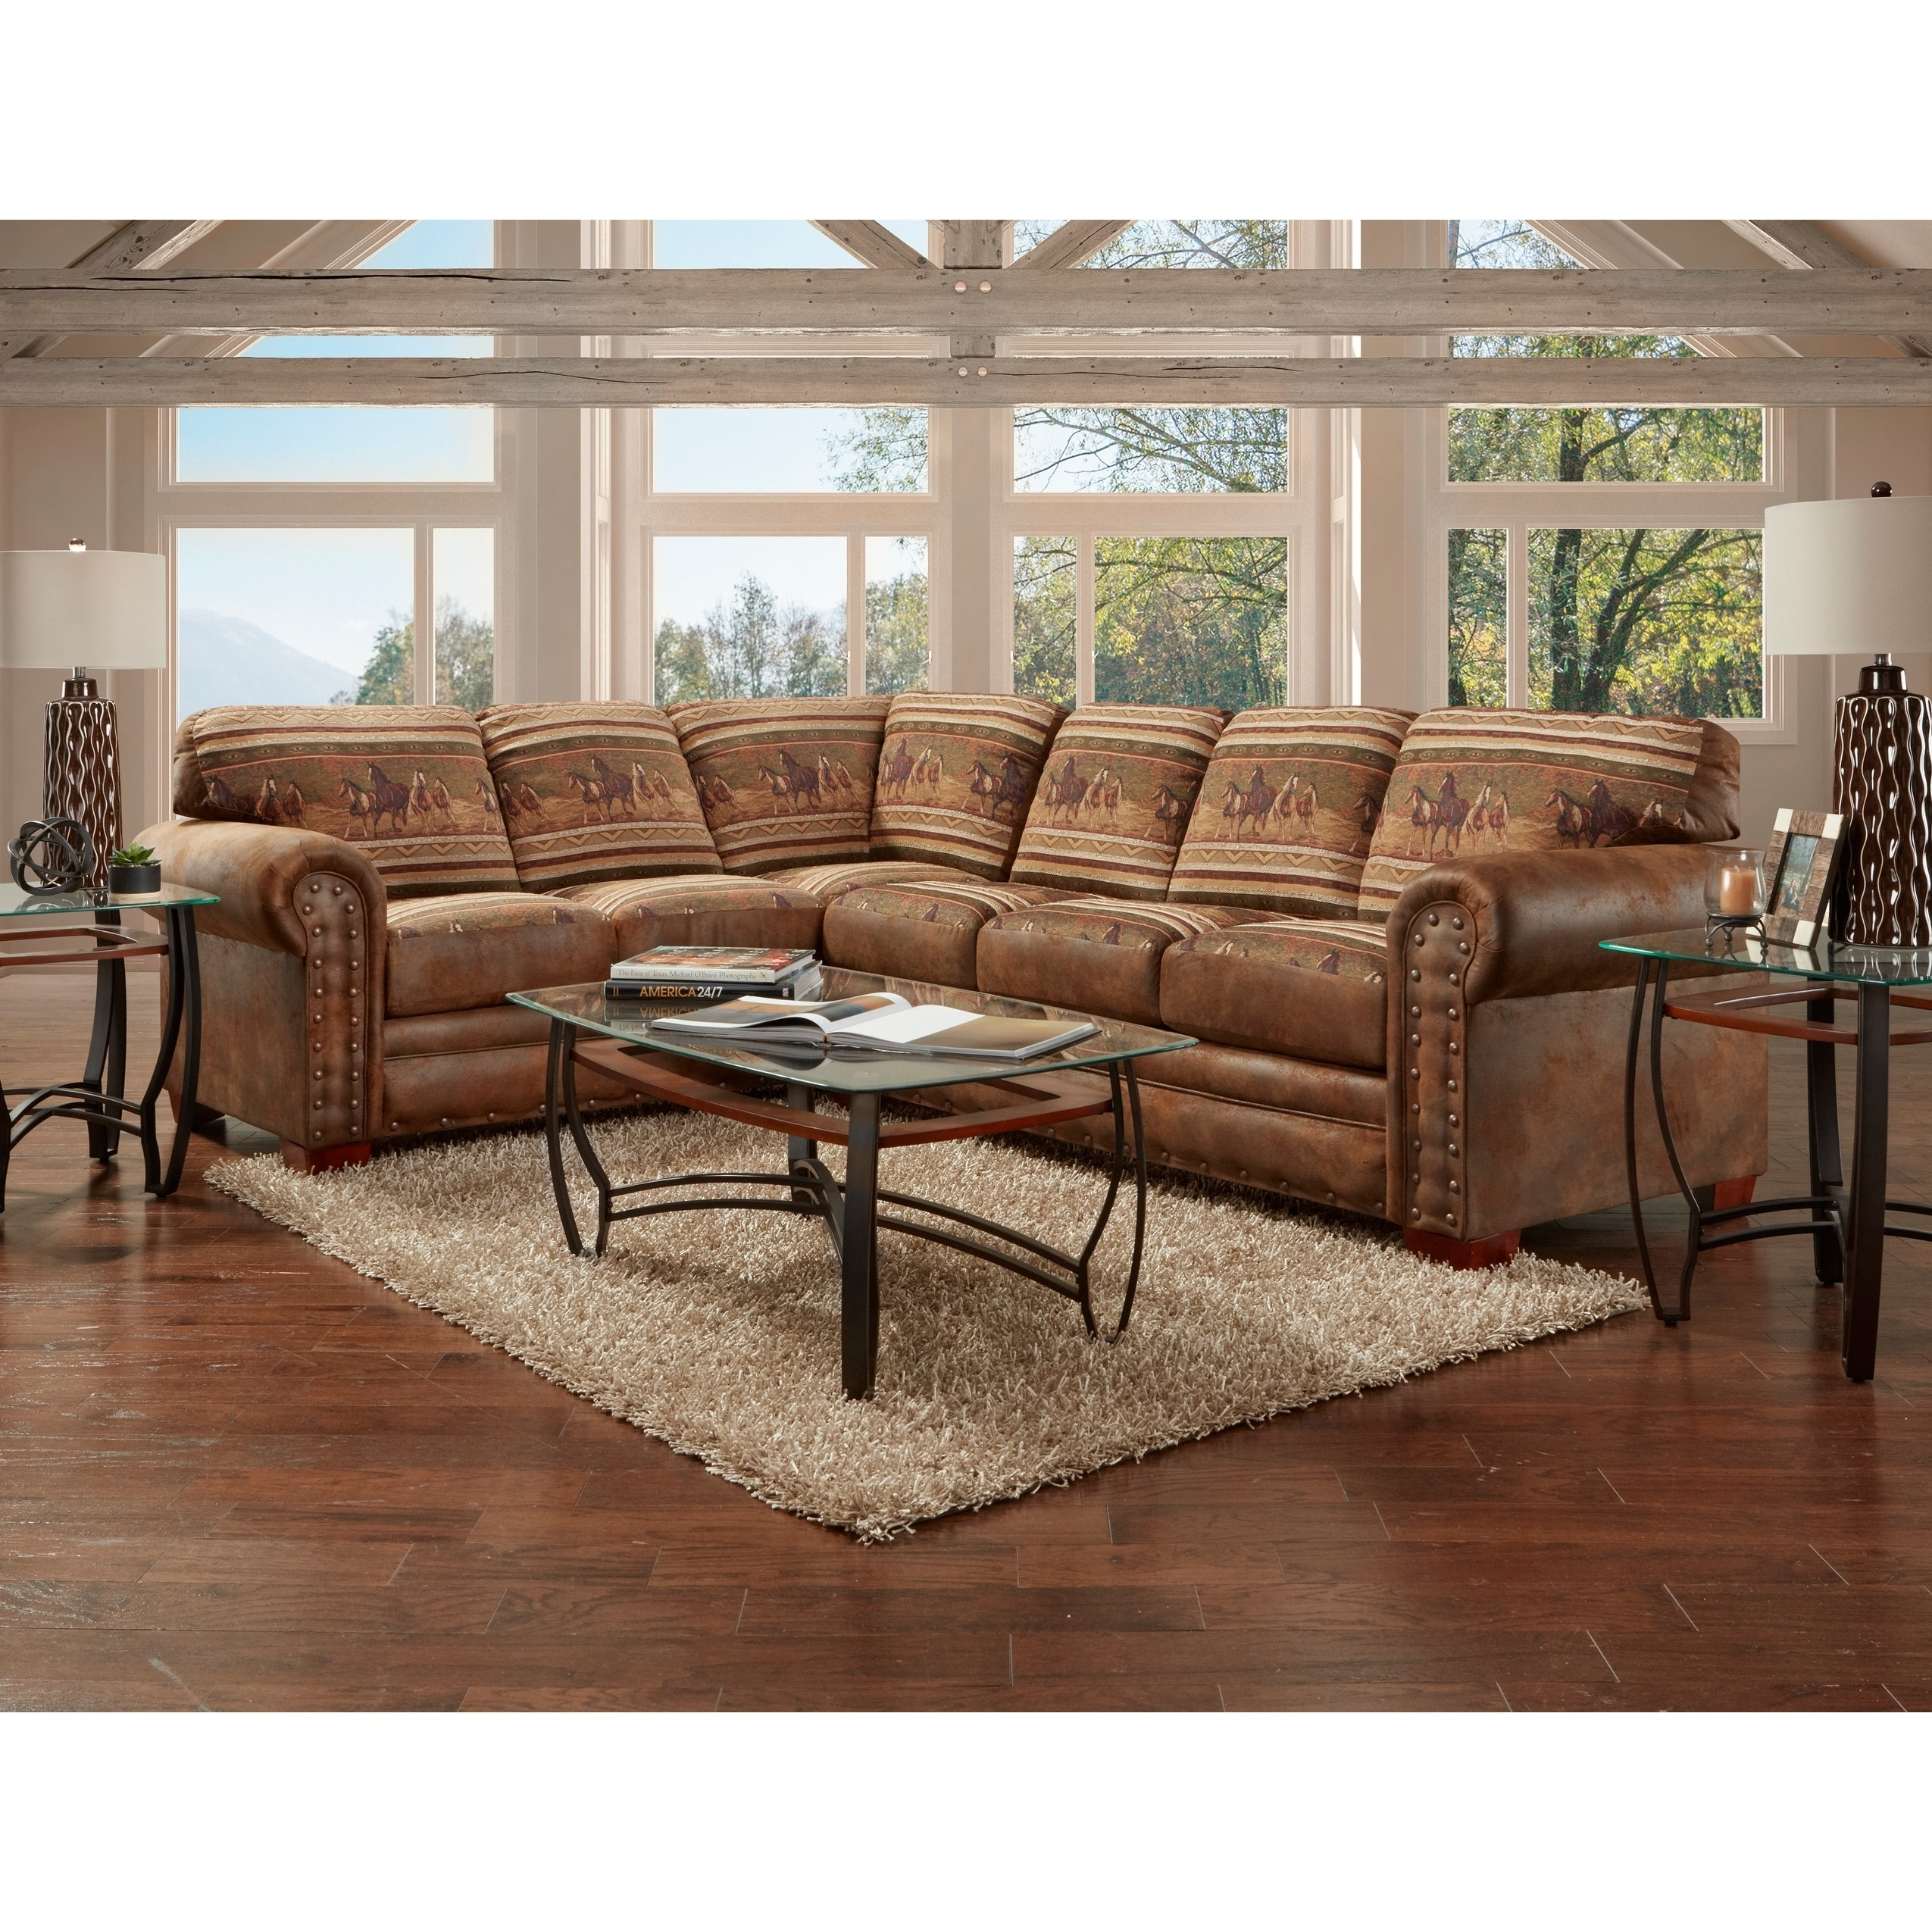 American Sofa Images American Furniture Classics Model 8506 40k Wild Horses Two Piece Sectional Sofa 8 X 10